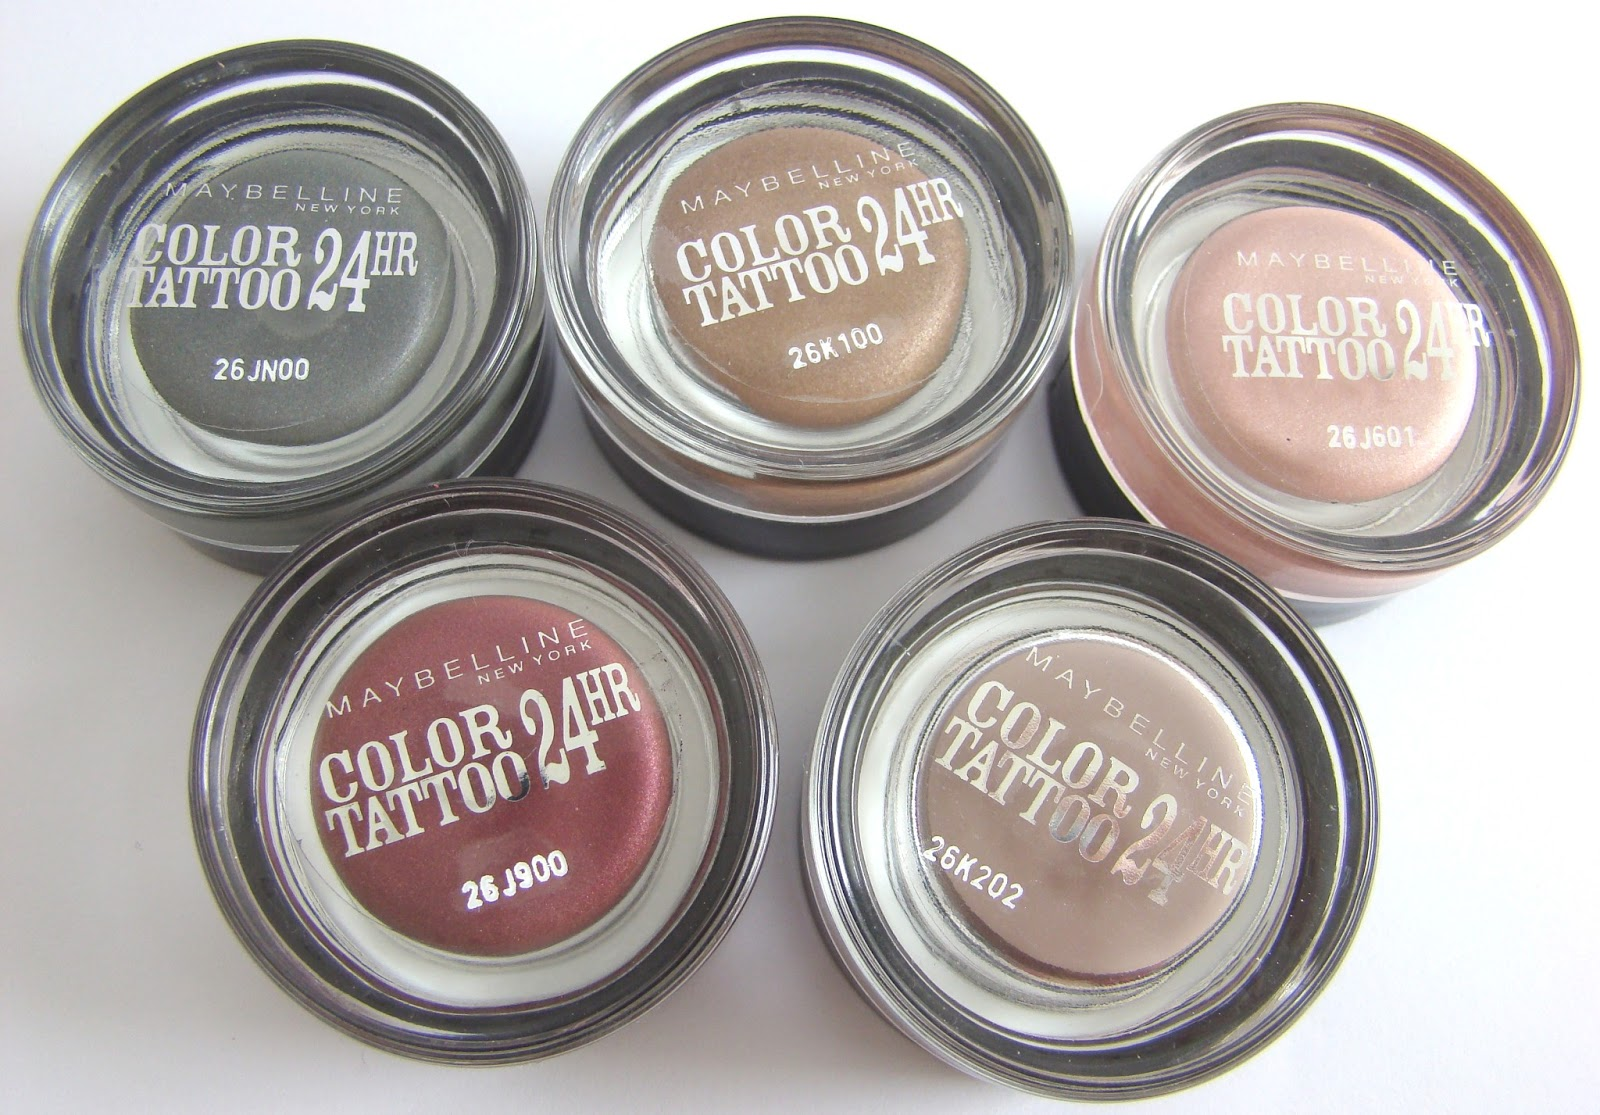 Kit beauty color tattoo gemey maybelline for Color tattoo maybelline